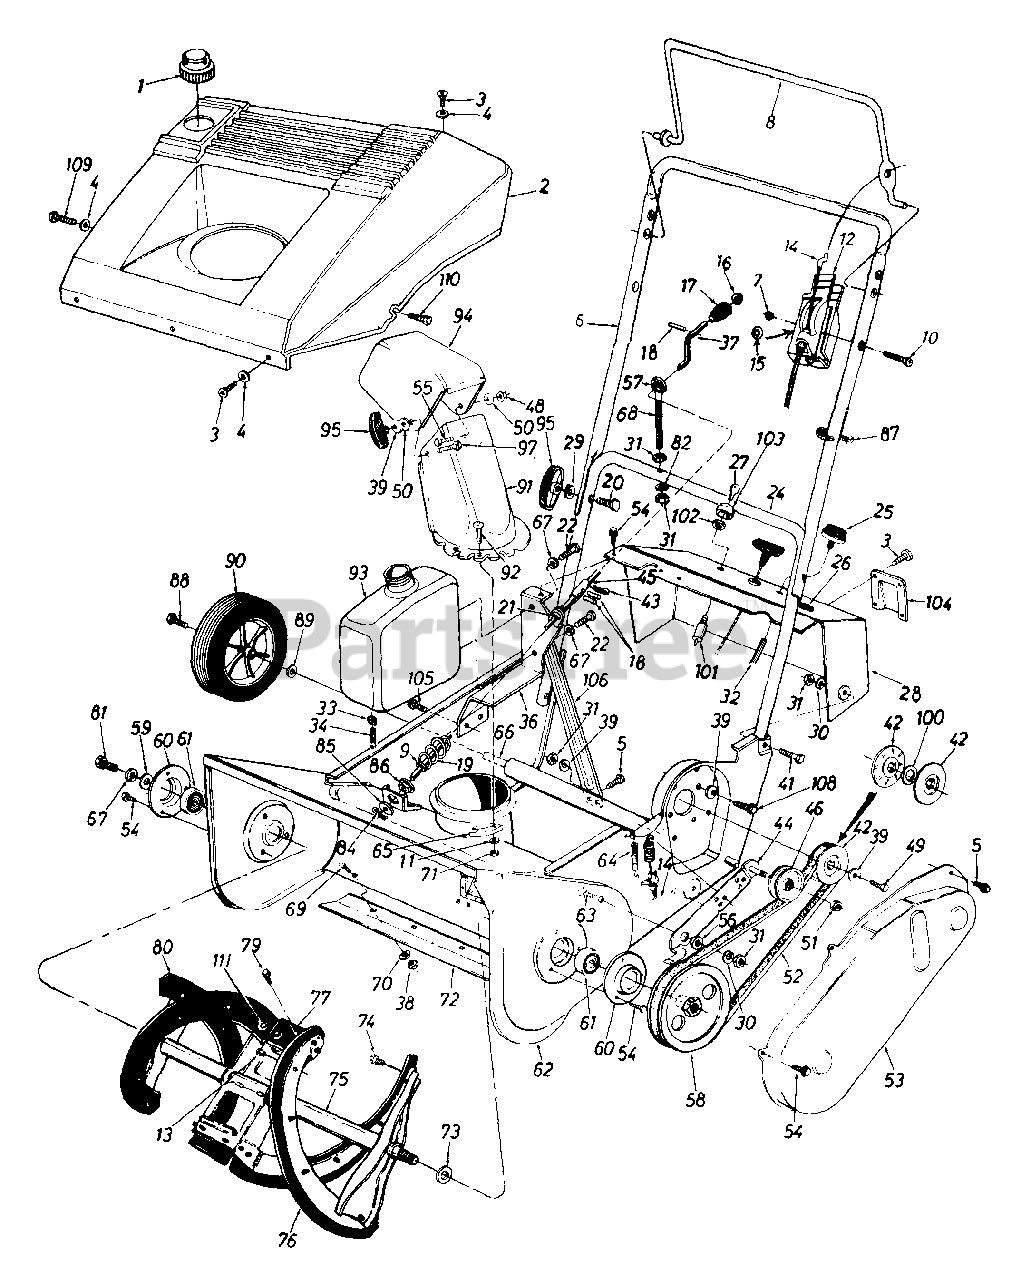 [DIAGRAM] Step By Step 1967 Chevrolet Carsplete 10 Page